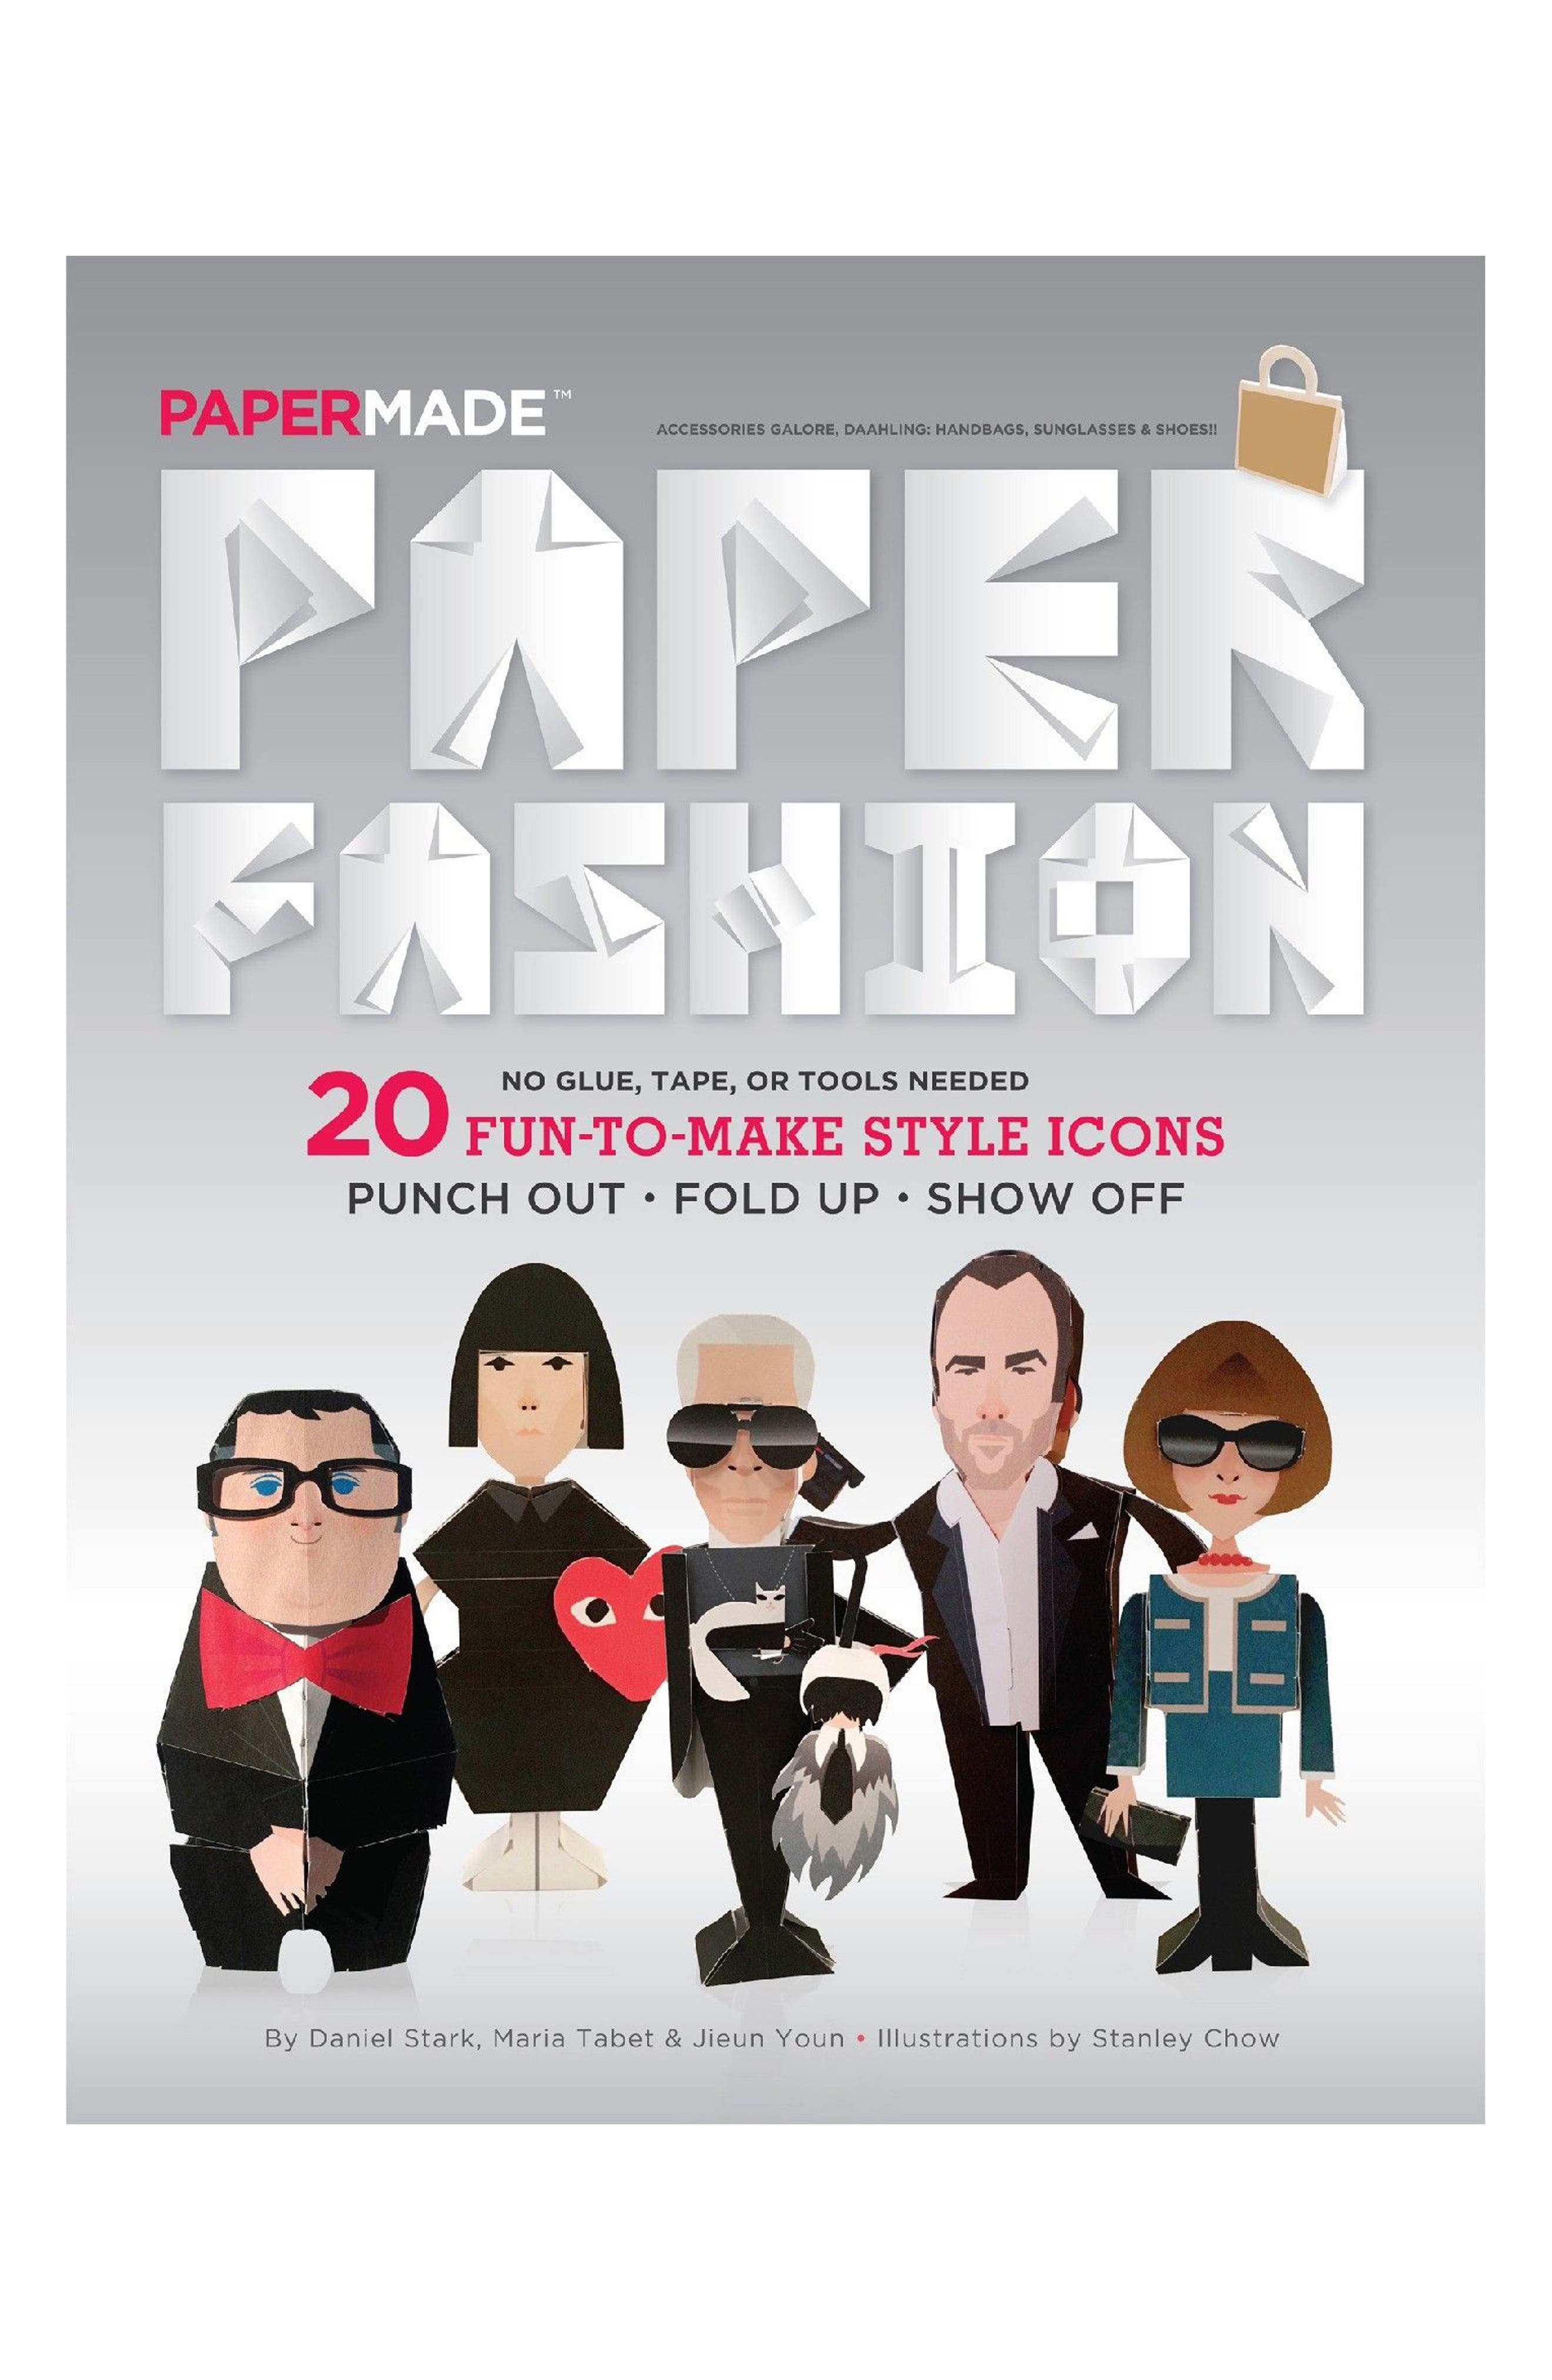 Papermade™ 'Paper Fashion' Style Icon Paper Doll Book